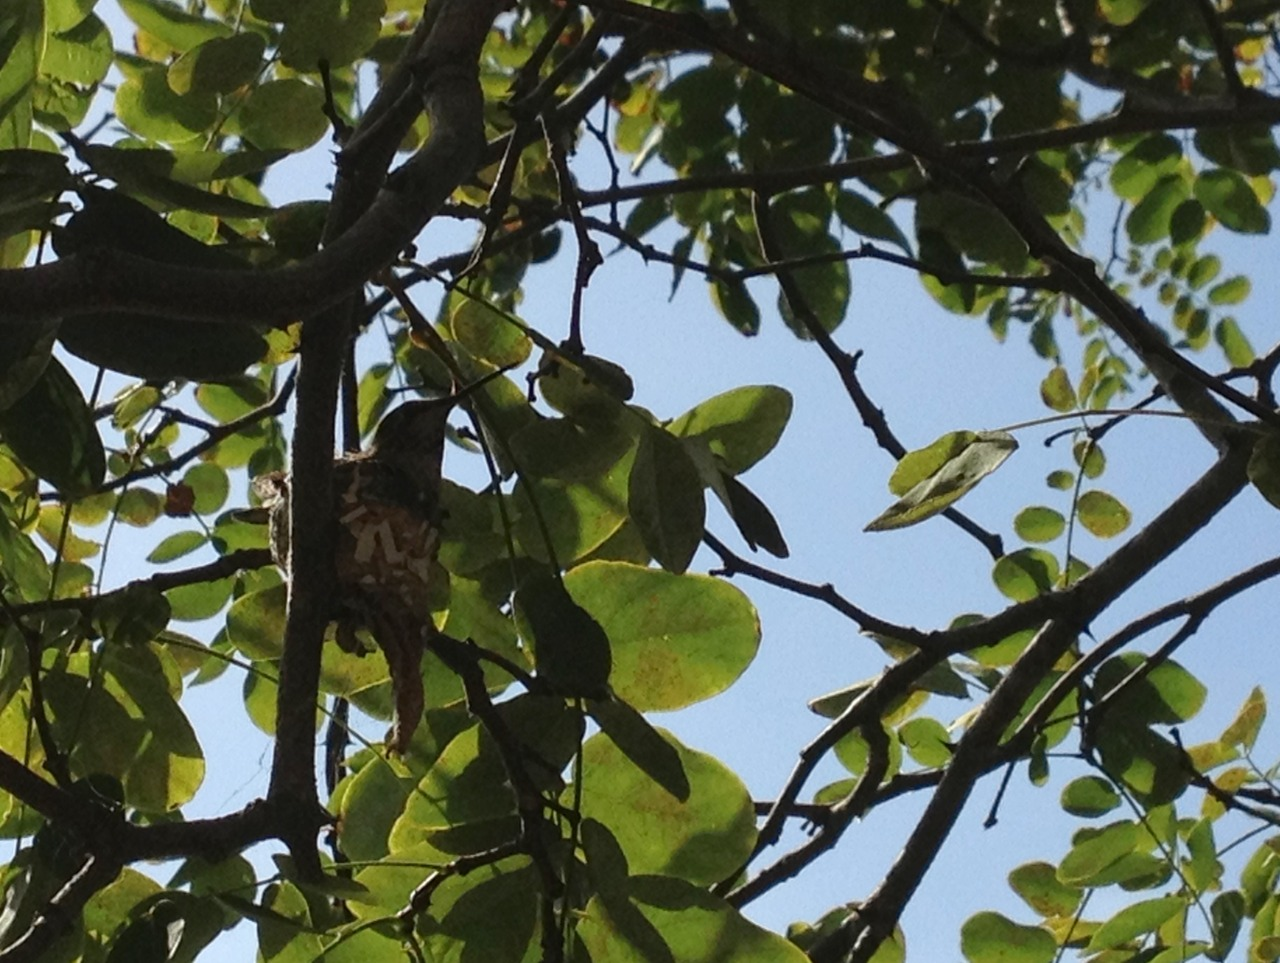 June 11, 2014    A nesting hummingbird in the tree outside my kitchen window.